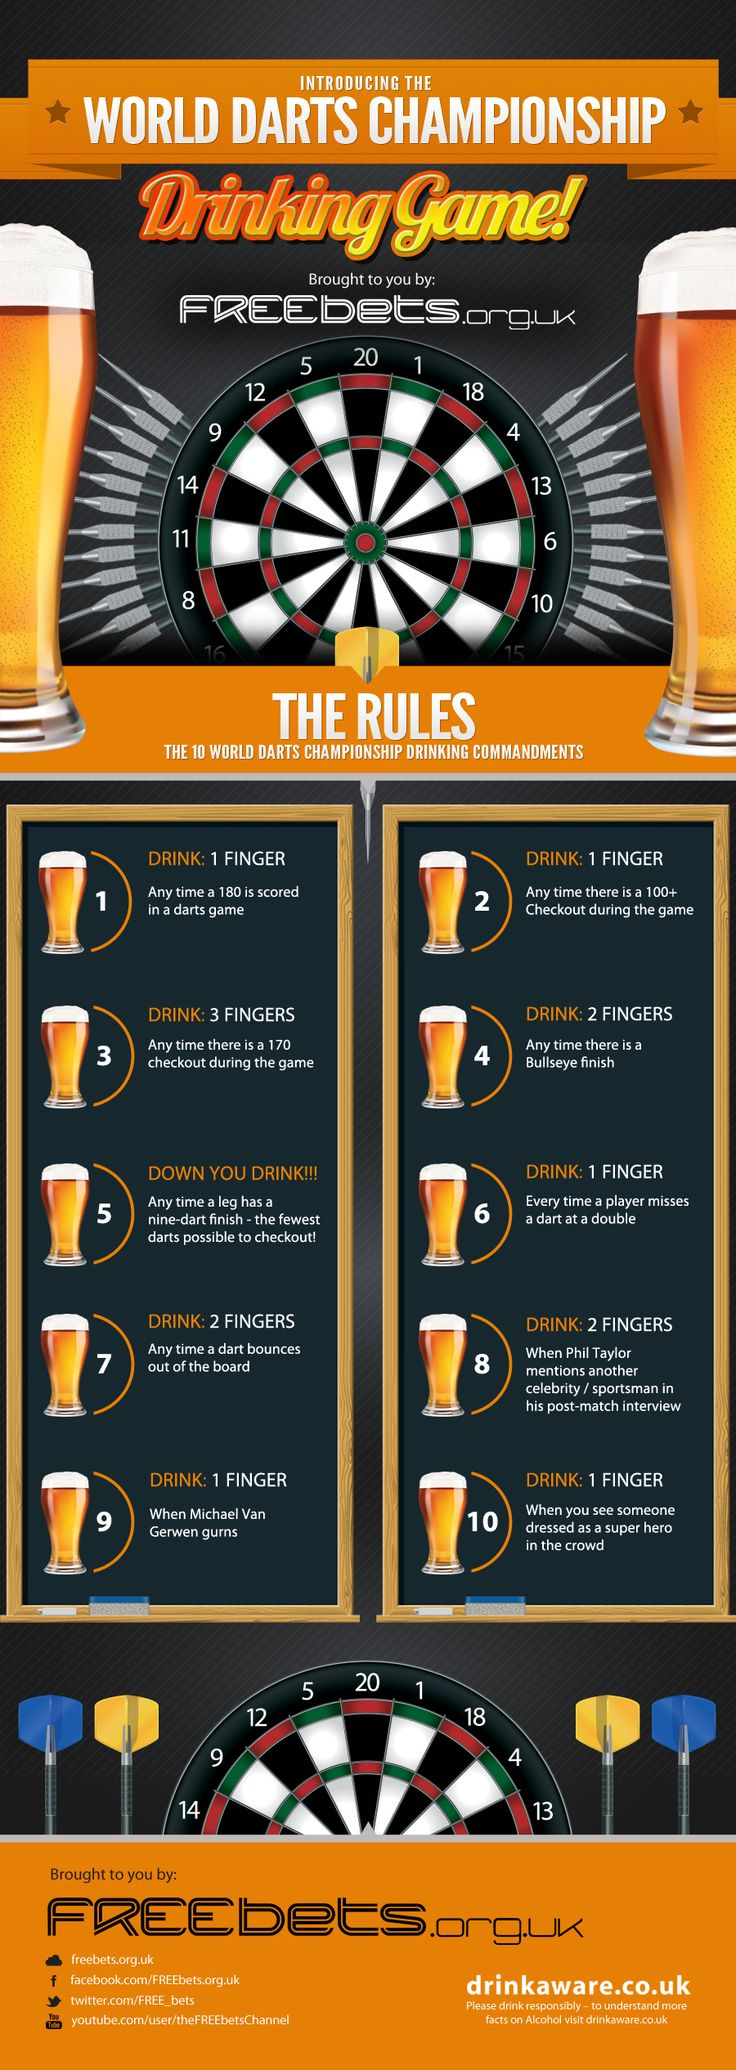 The World Darts Chamionships DRINKING COMMANDMENTS! This darts drinking game is not for the faint hearted - don't miss out! #darts #sports #drinking game